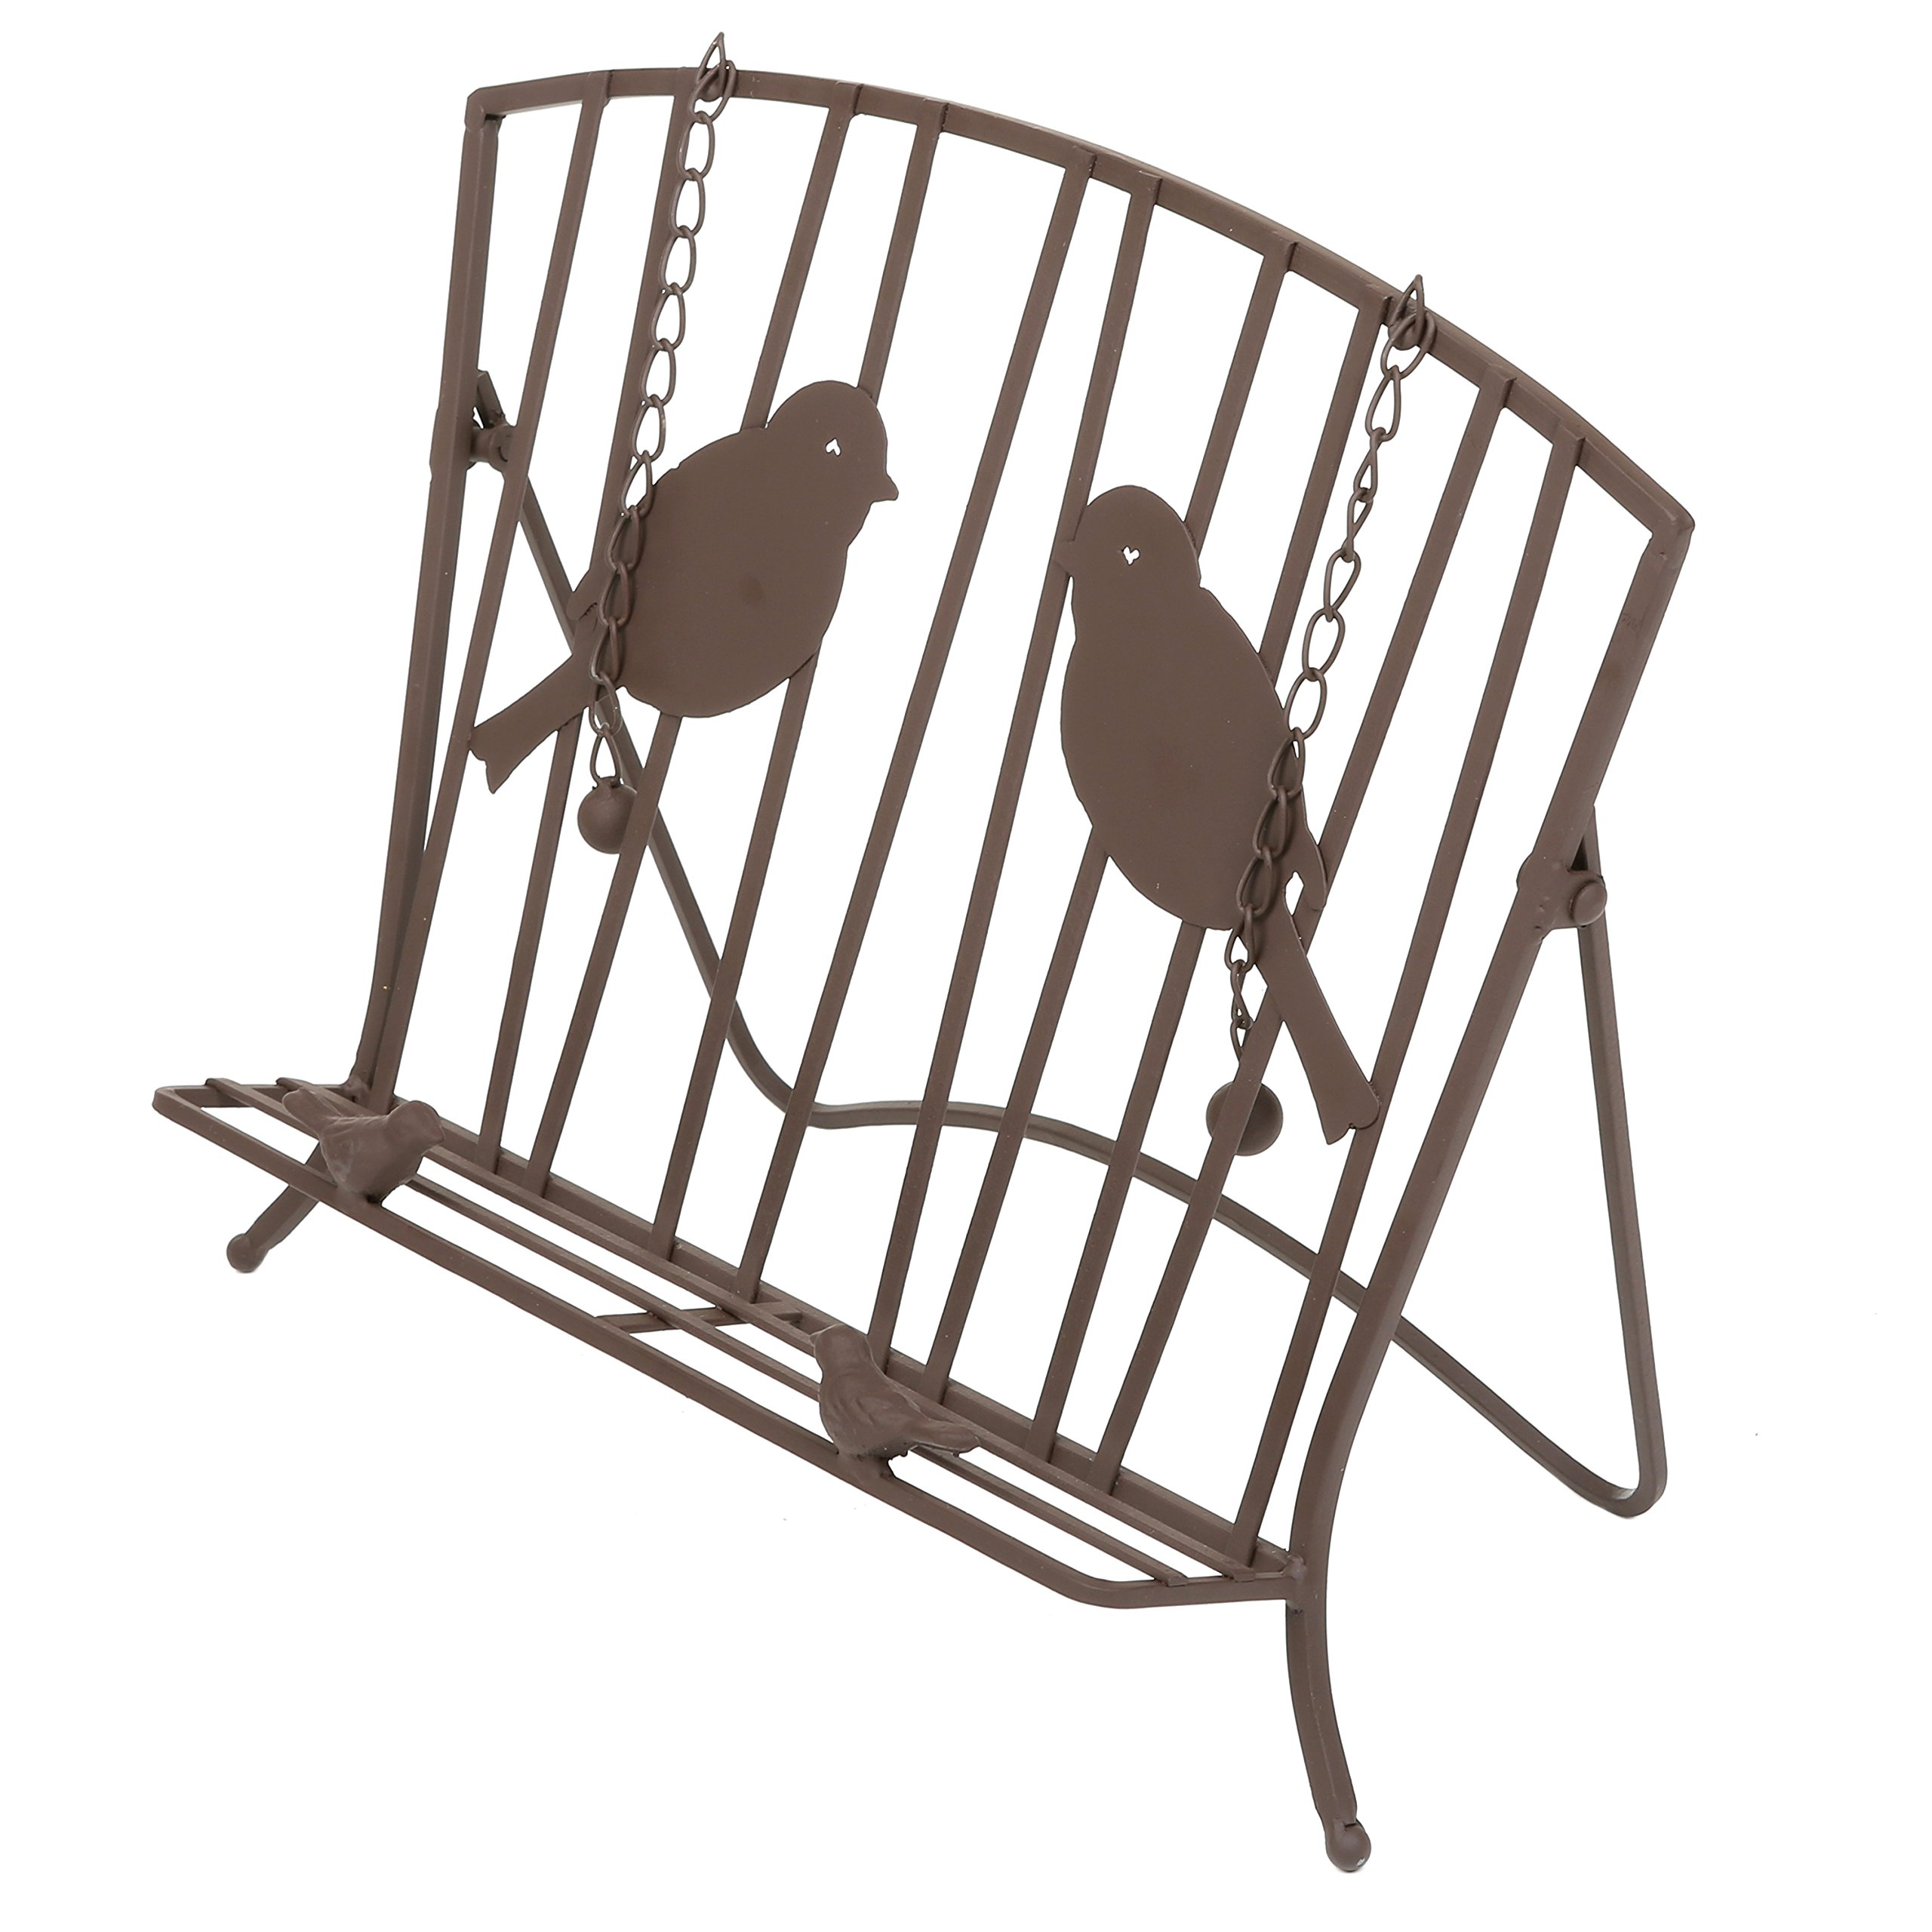 Countertop Metal Bird Design Cookbook Holder, Support Stand for Books and Tablets, Brown by MyGift